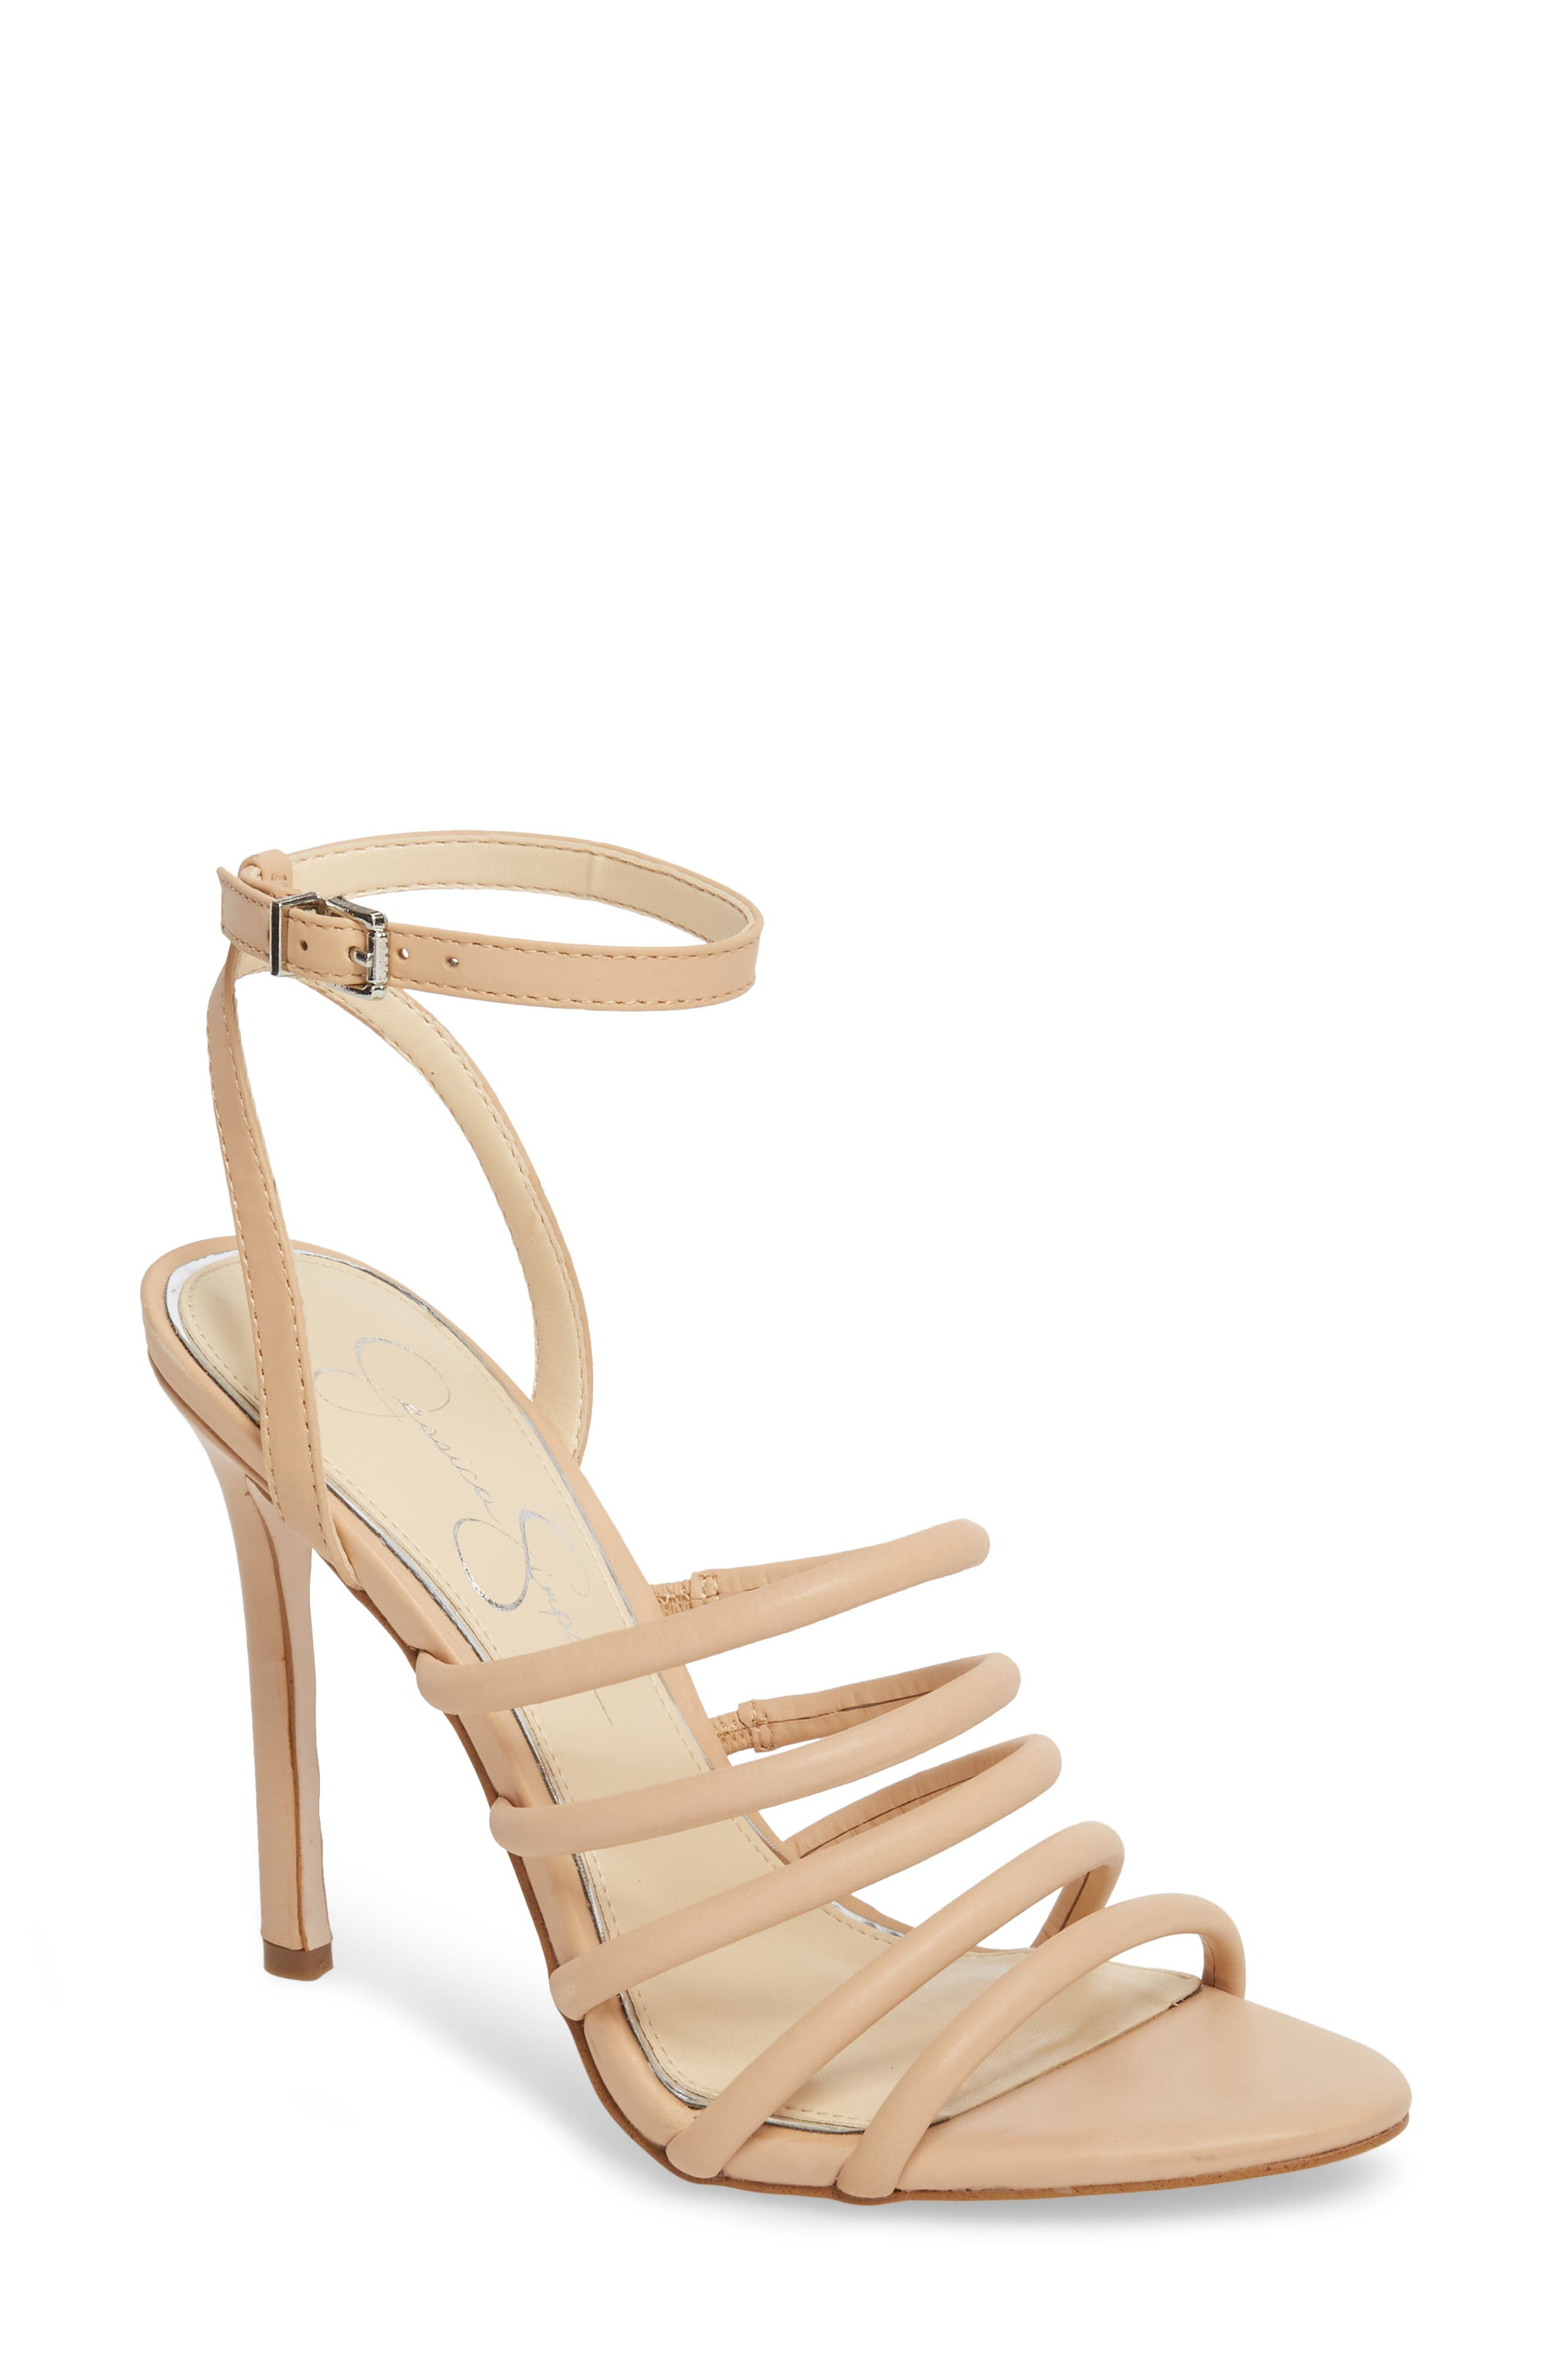 Joselle Strappy Sandal,                             Main thumbnail 3, color,